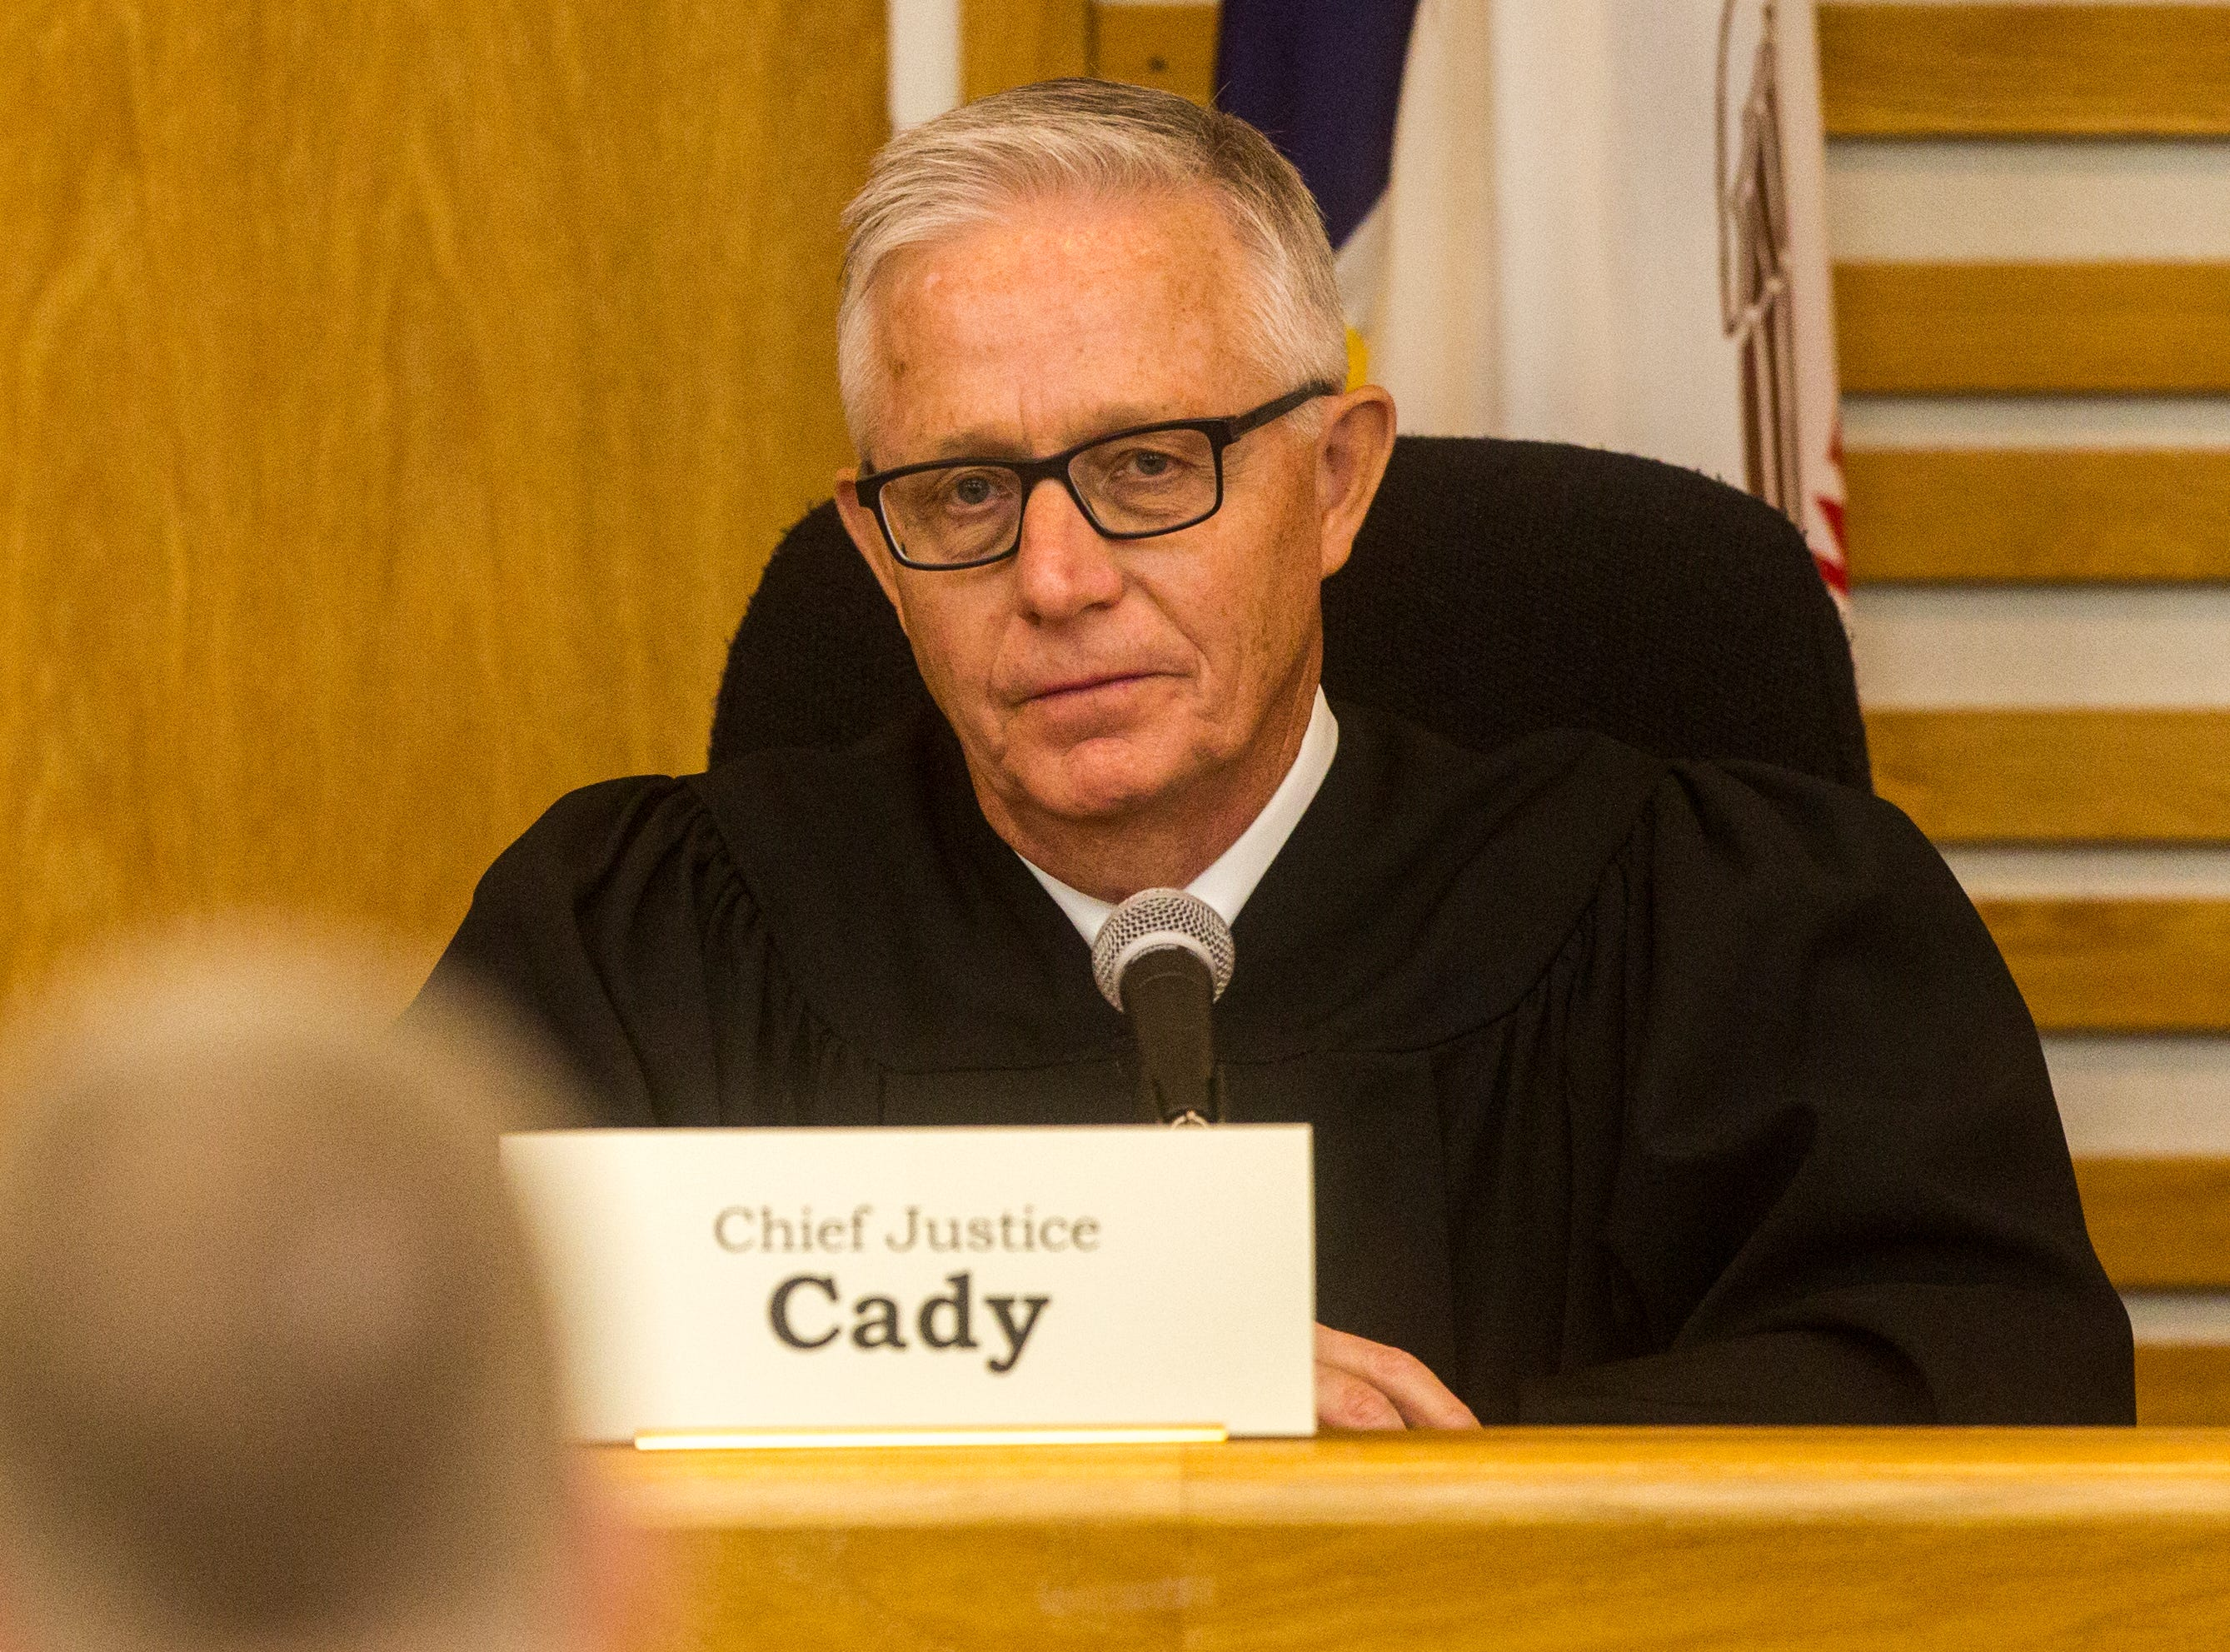 Chief Justice Mark Cady of the Iowa Supreme Court listens while oral arguments are presented on Friday, Sept. 7, 2018, at Levitt Auditorium inside the Boyd Law Building on the University of Iowa campus in Iowa City.